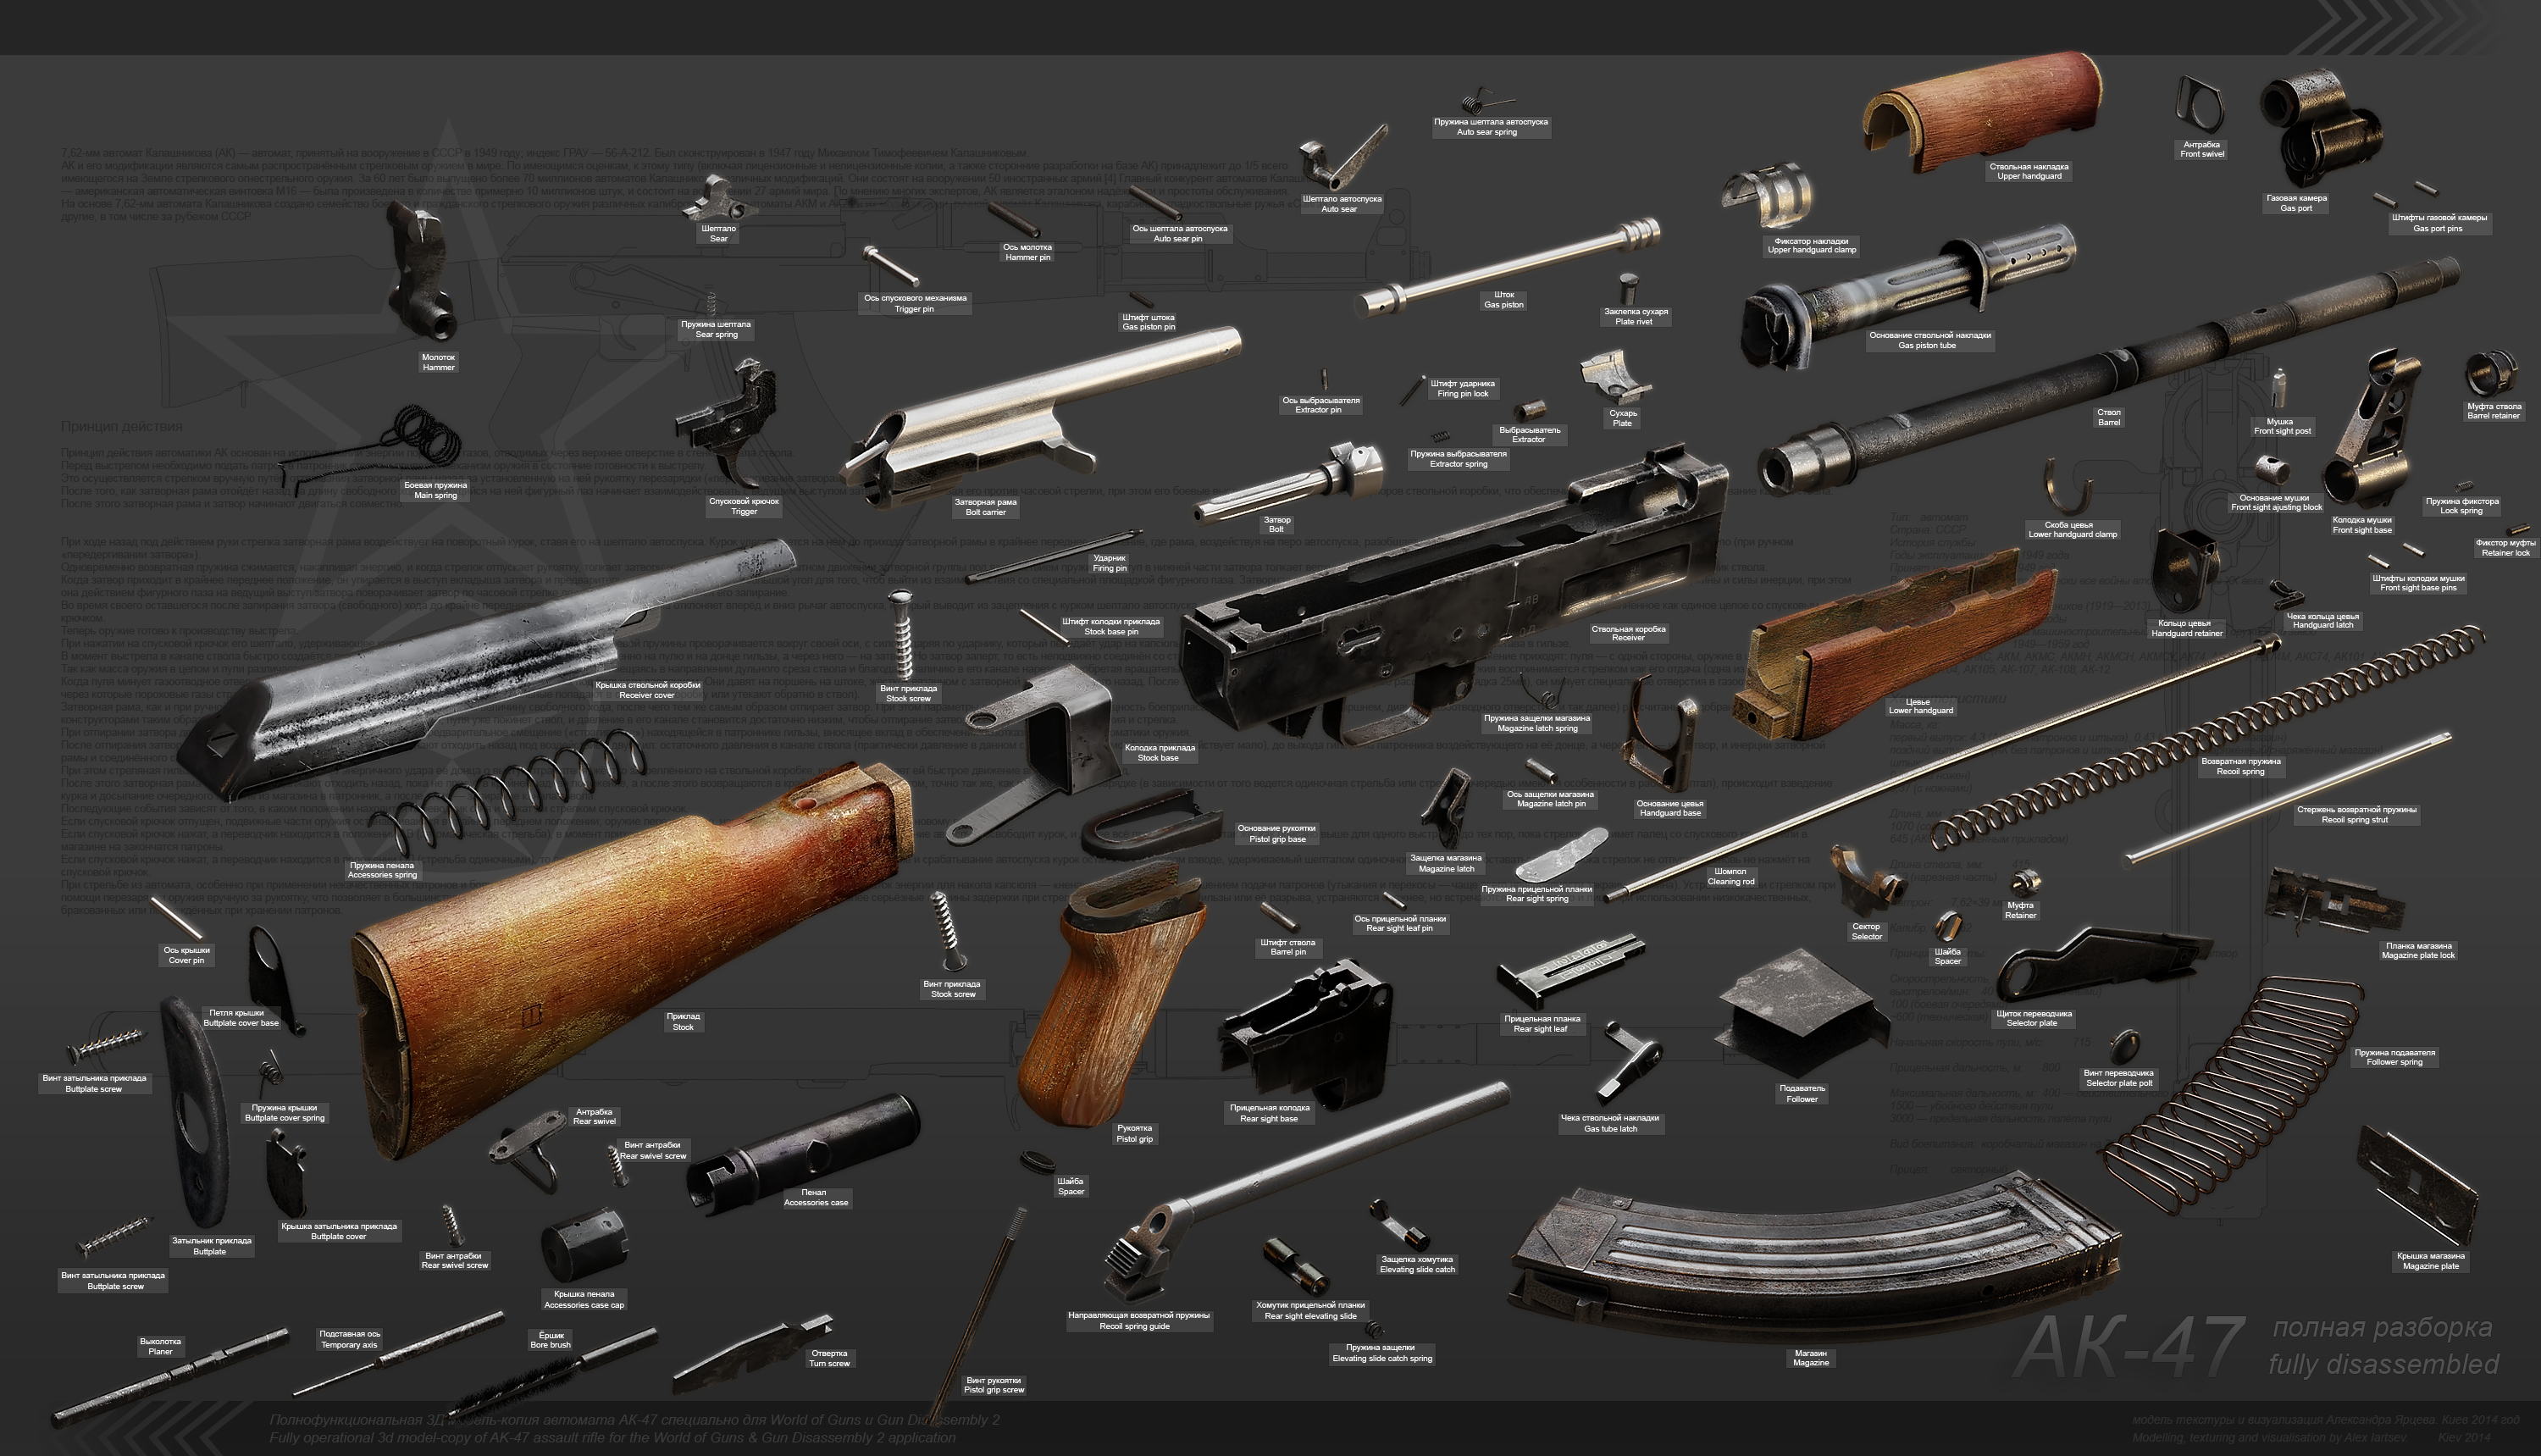 3d ak 47 and search on pinterest : ak 47 diagram - findchart.co